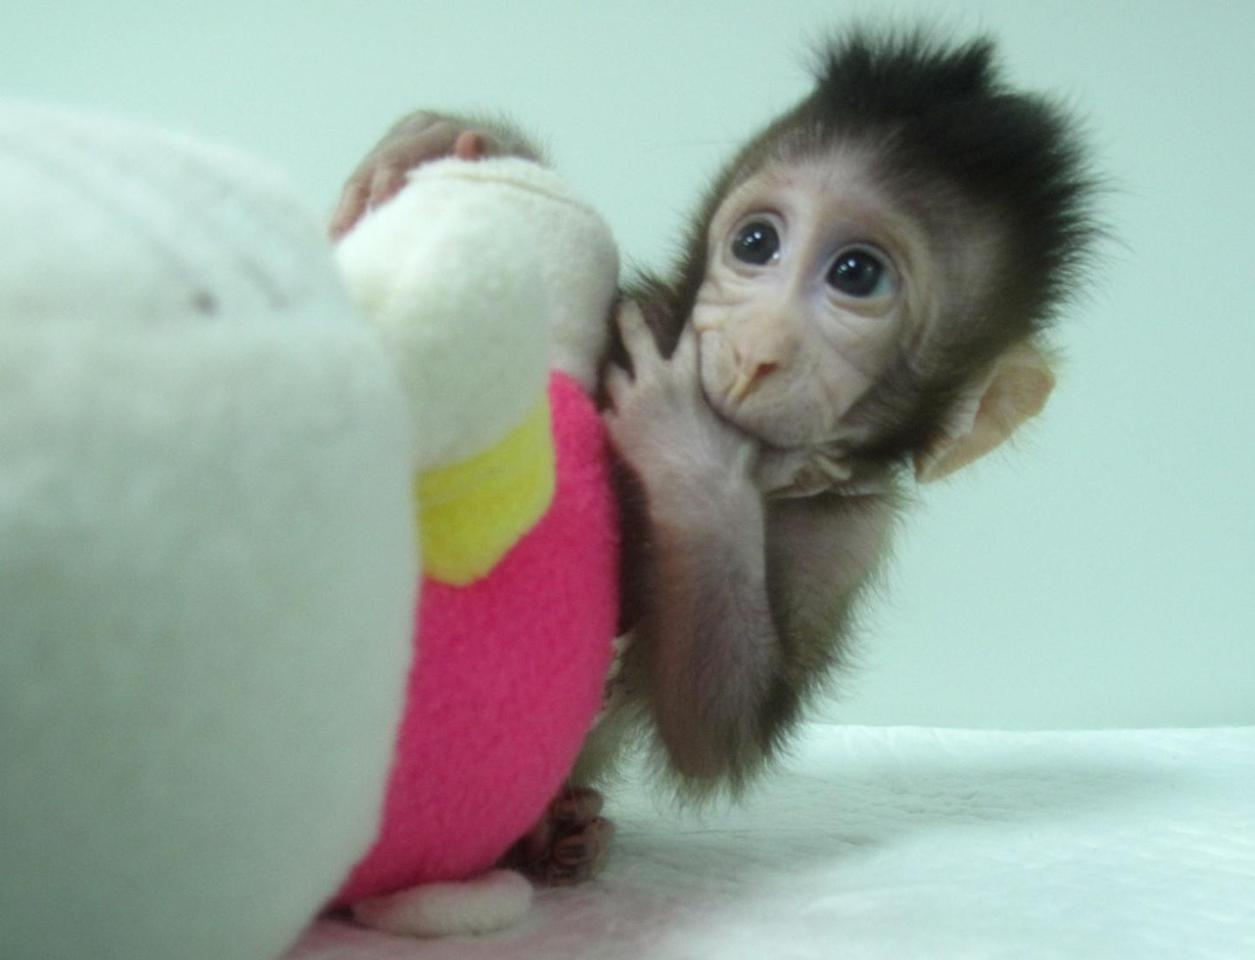 One of the cloned monkeys, named Zhong Zhong